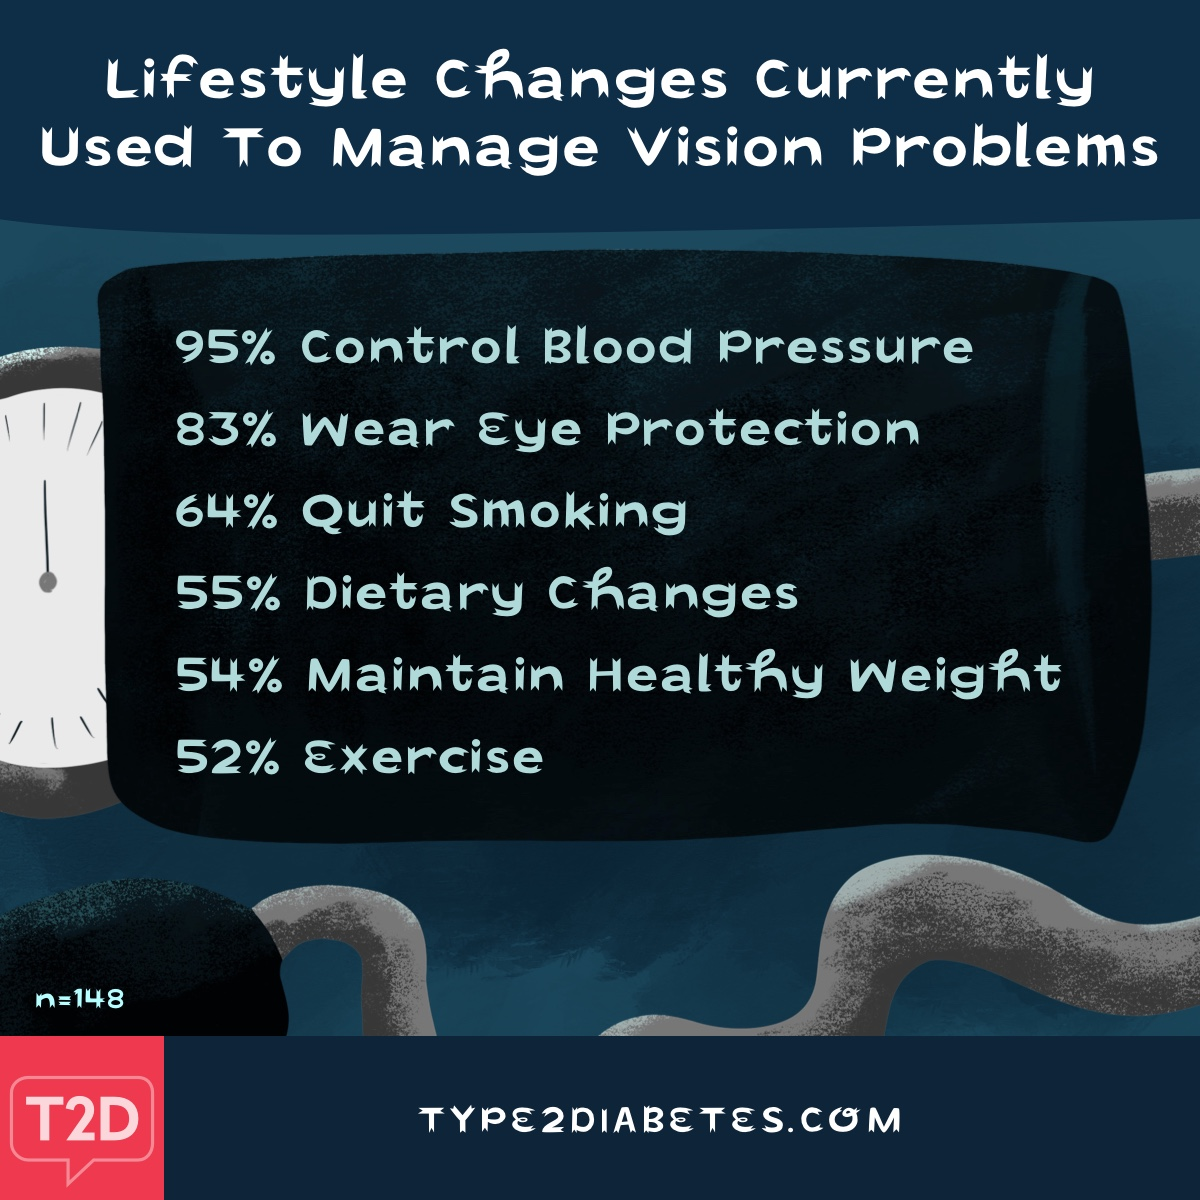 Lifestyle changes to manage vision issues are blood pressure control, eye protection, quit smoking, diet changes and exercise